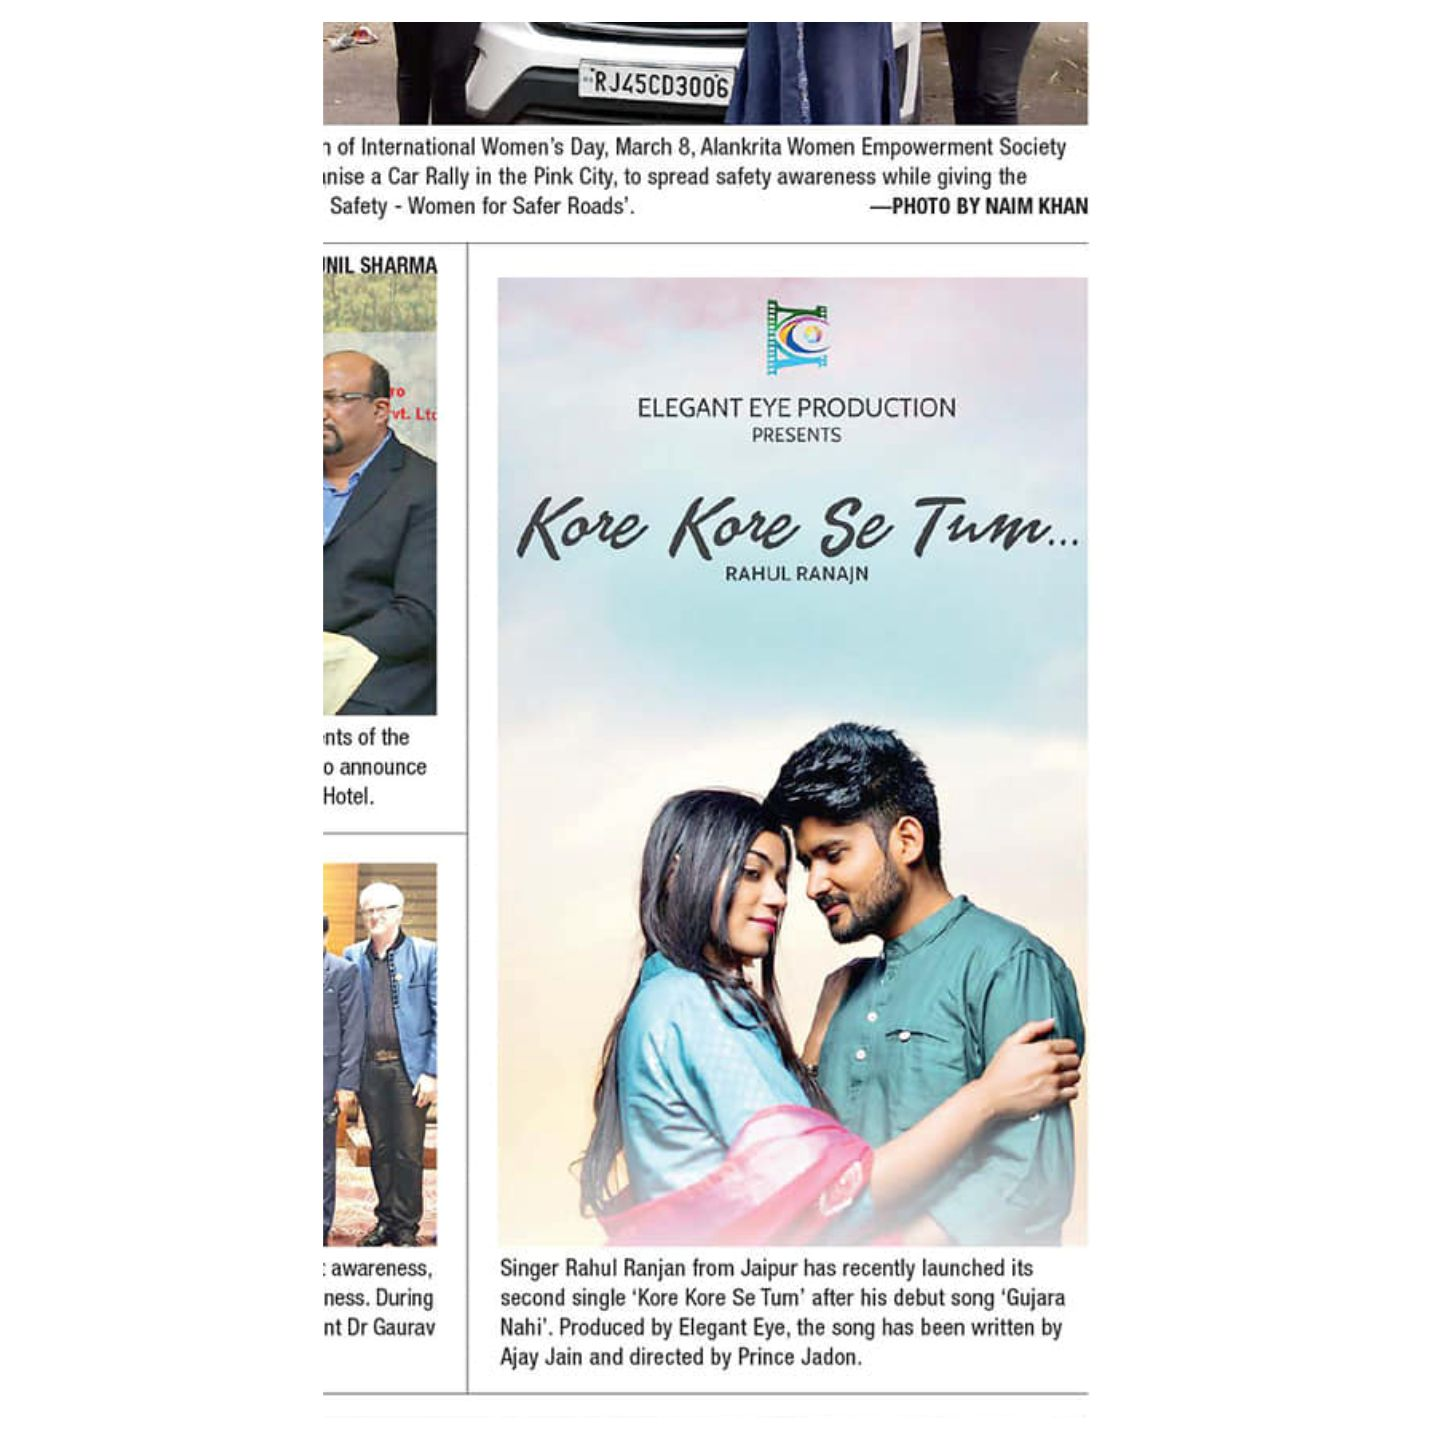 Rahul Ranjan's second song Kore Kore Se Tum Launched